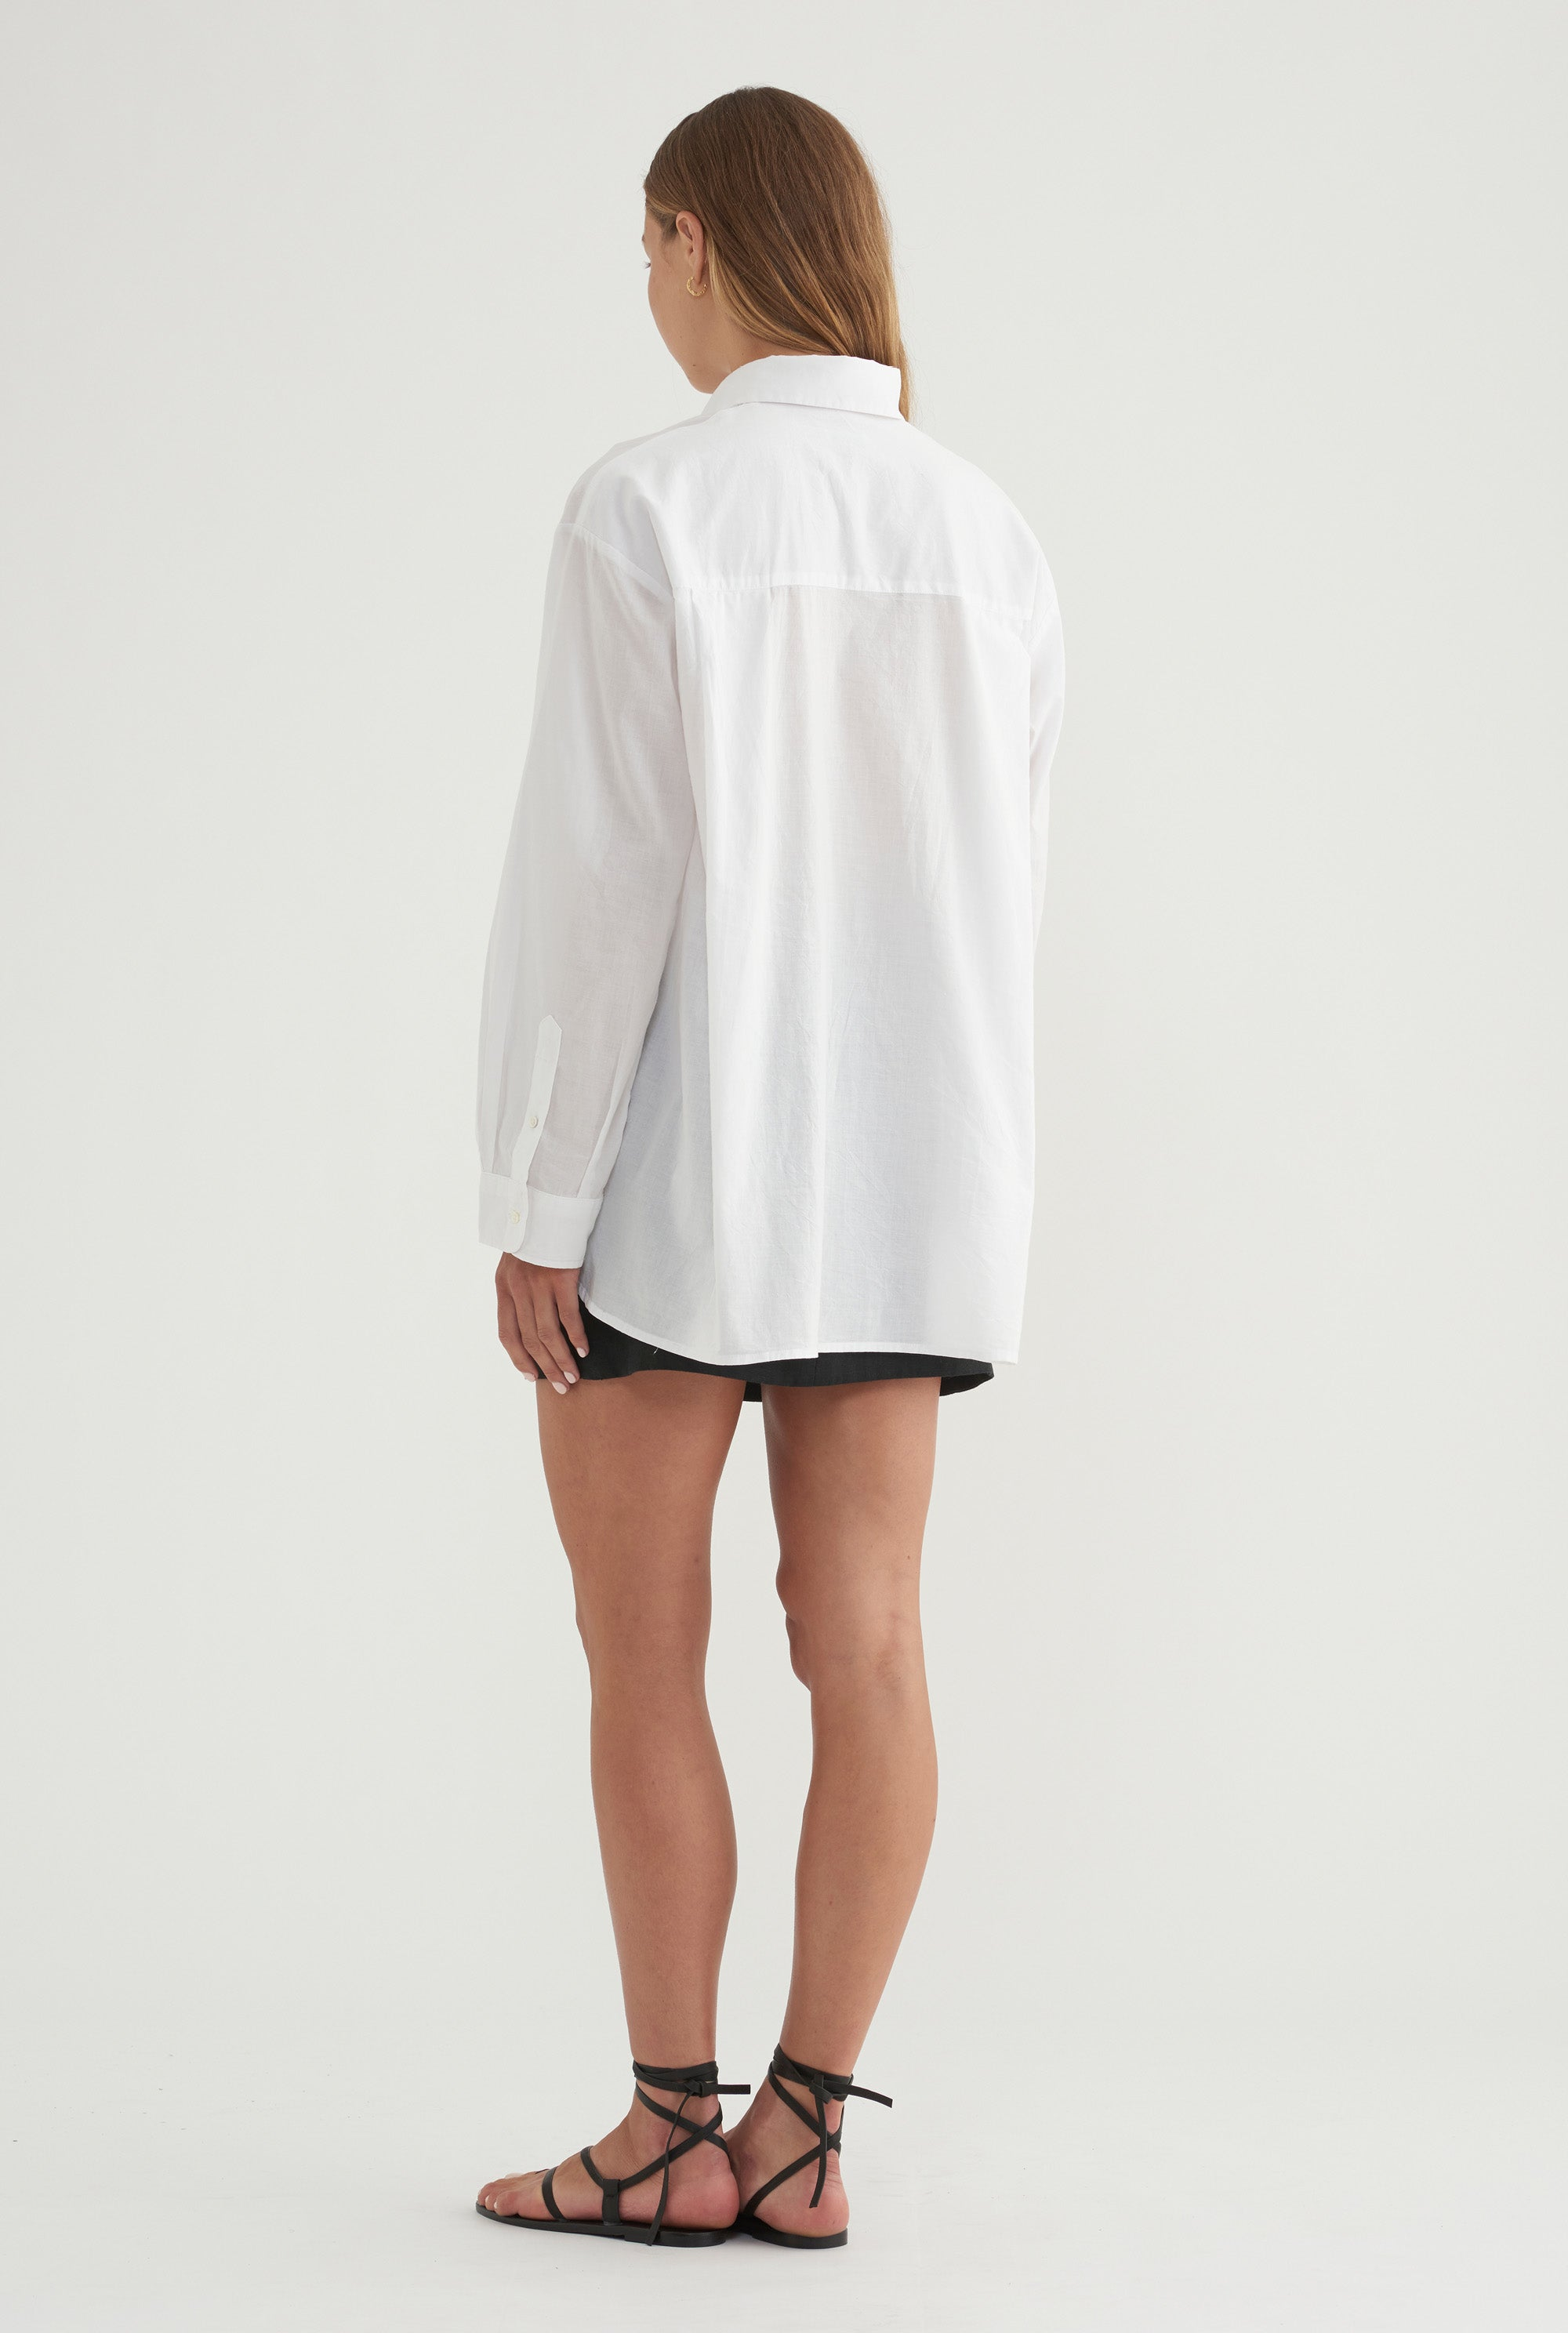 Oversized Shirt - White